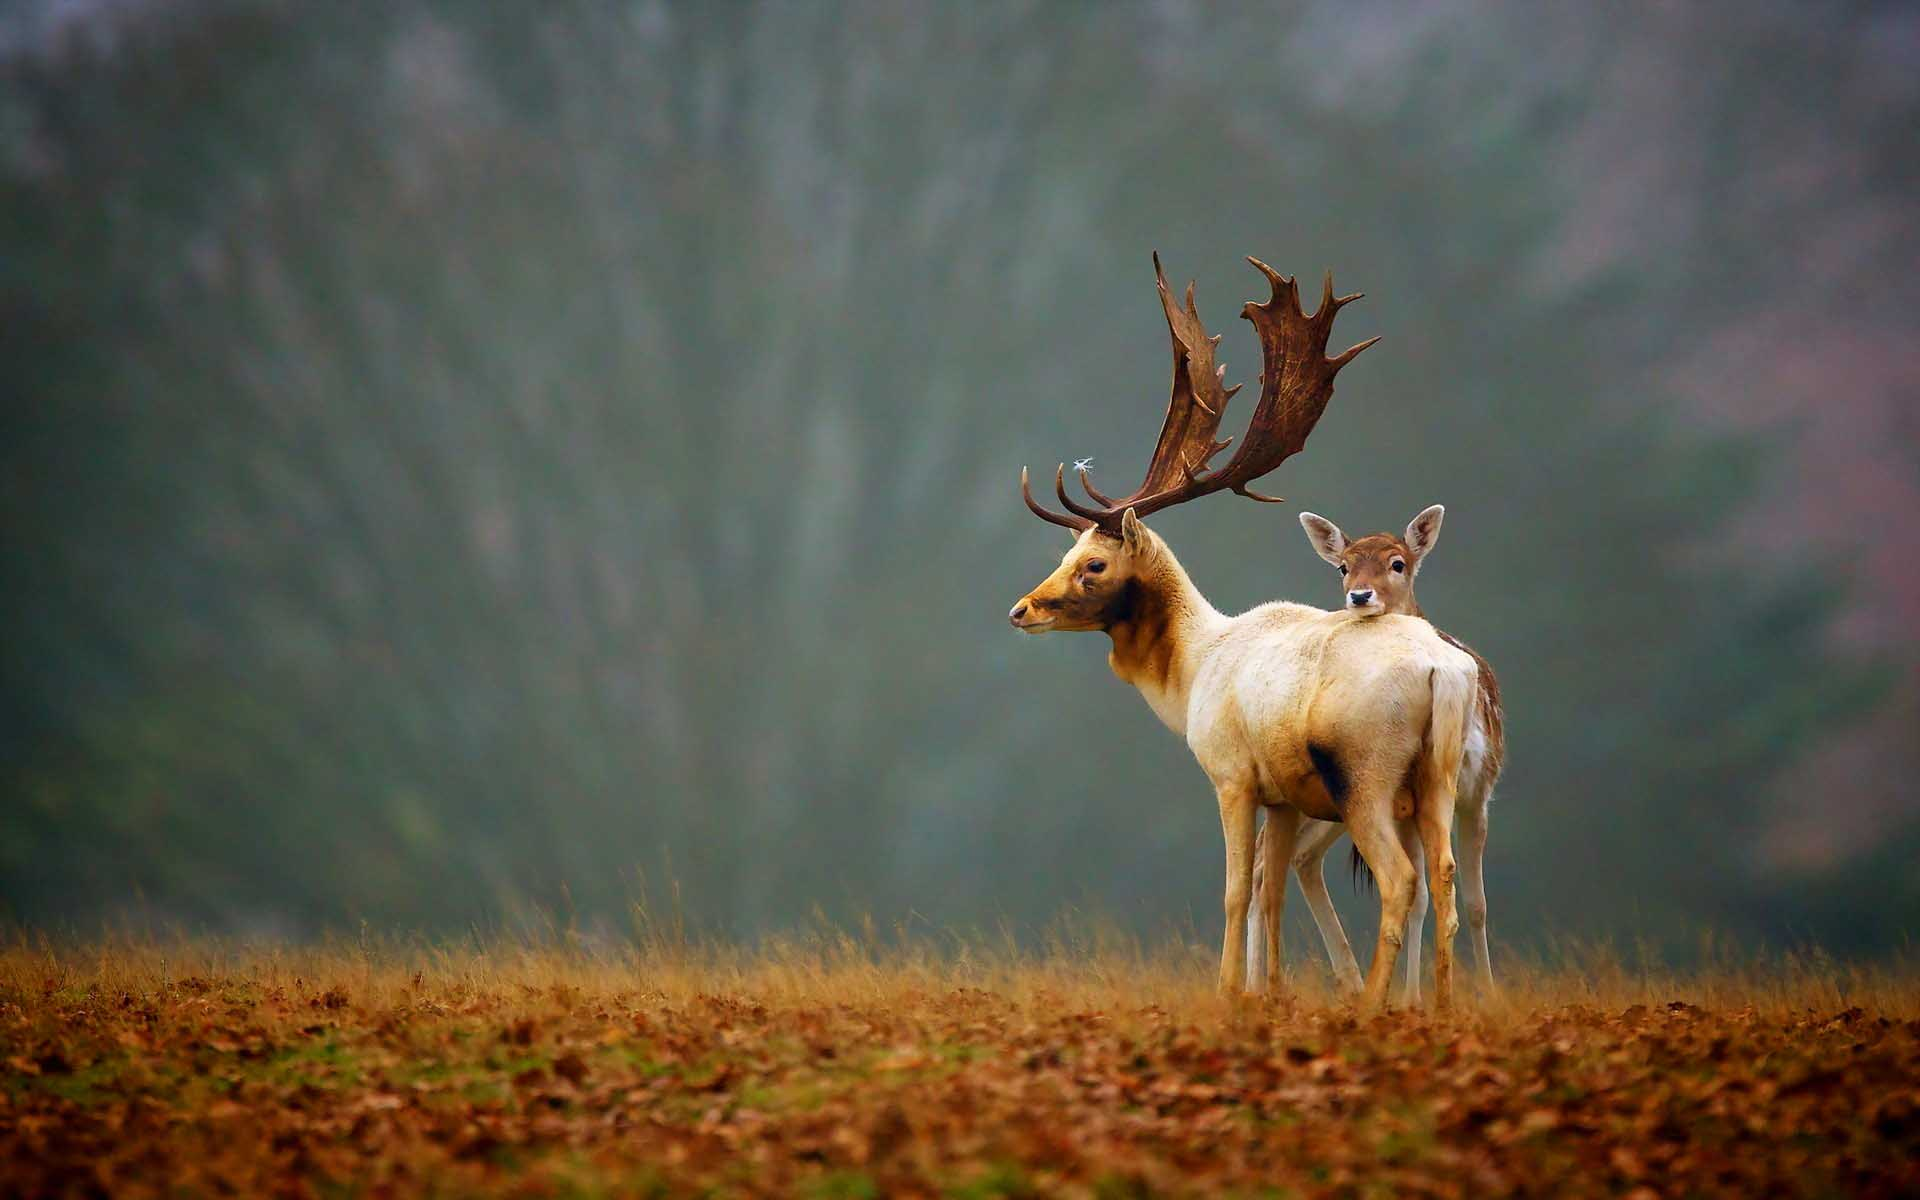 Олень-олененок-Deers-Nature-High-Definition-Wallpaper-1920x1200